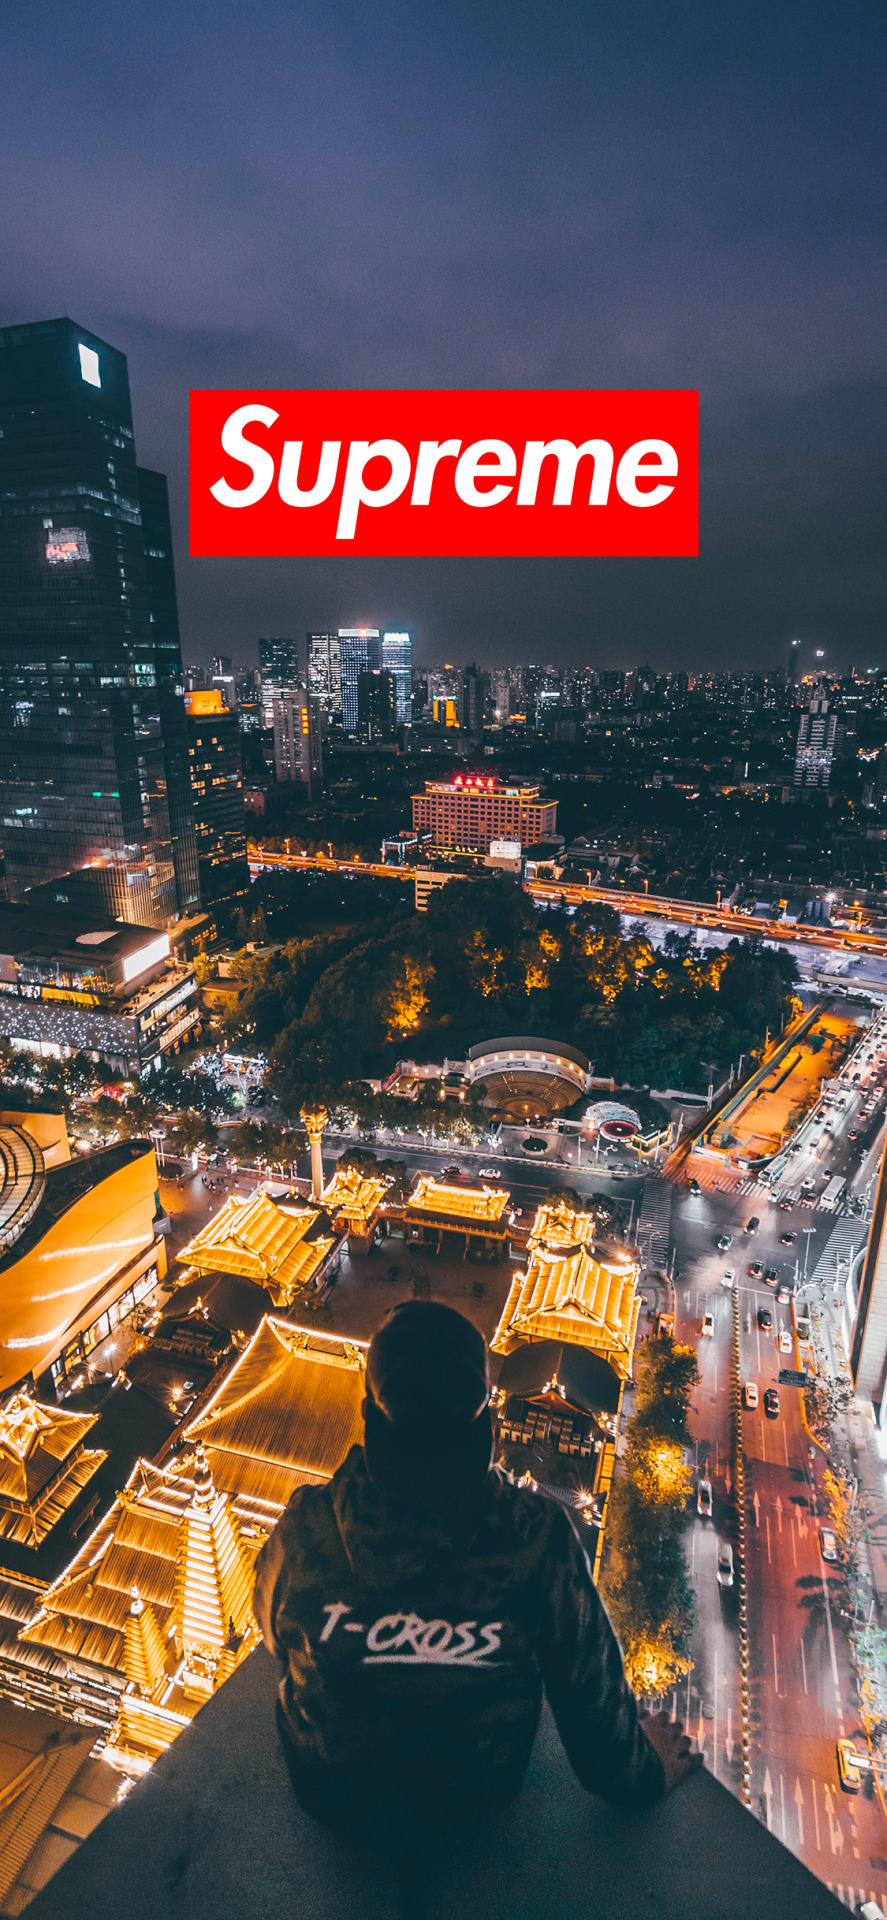 0 549 image cool iphone xr wallpapers supreme